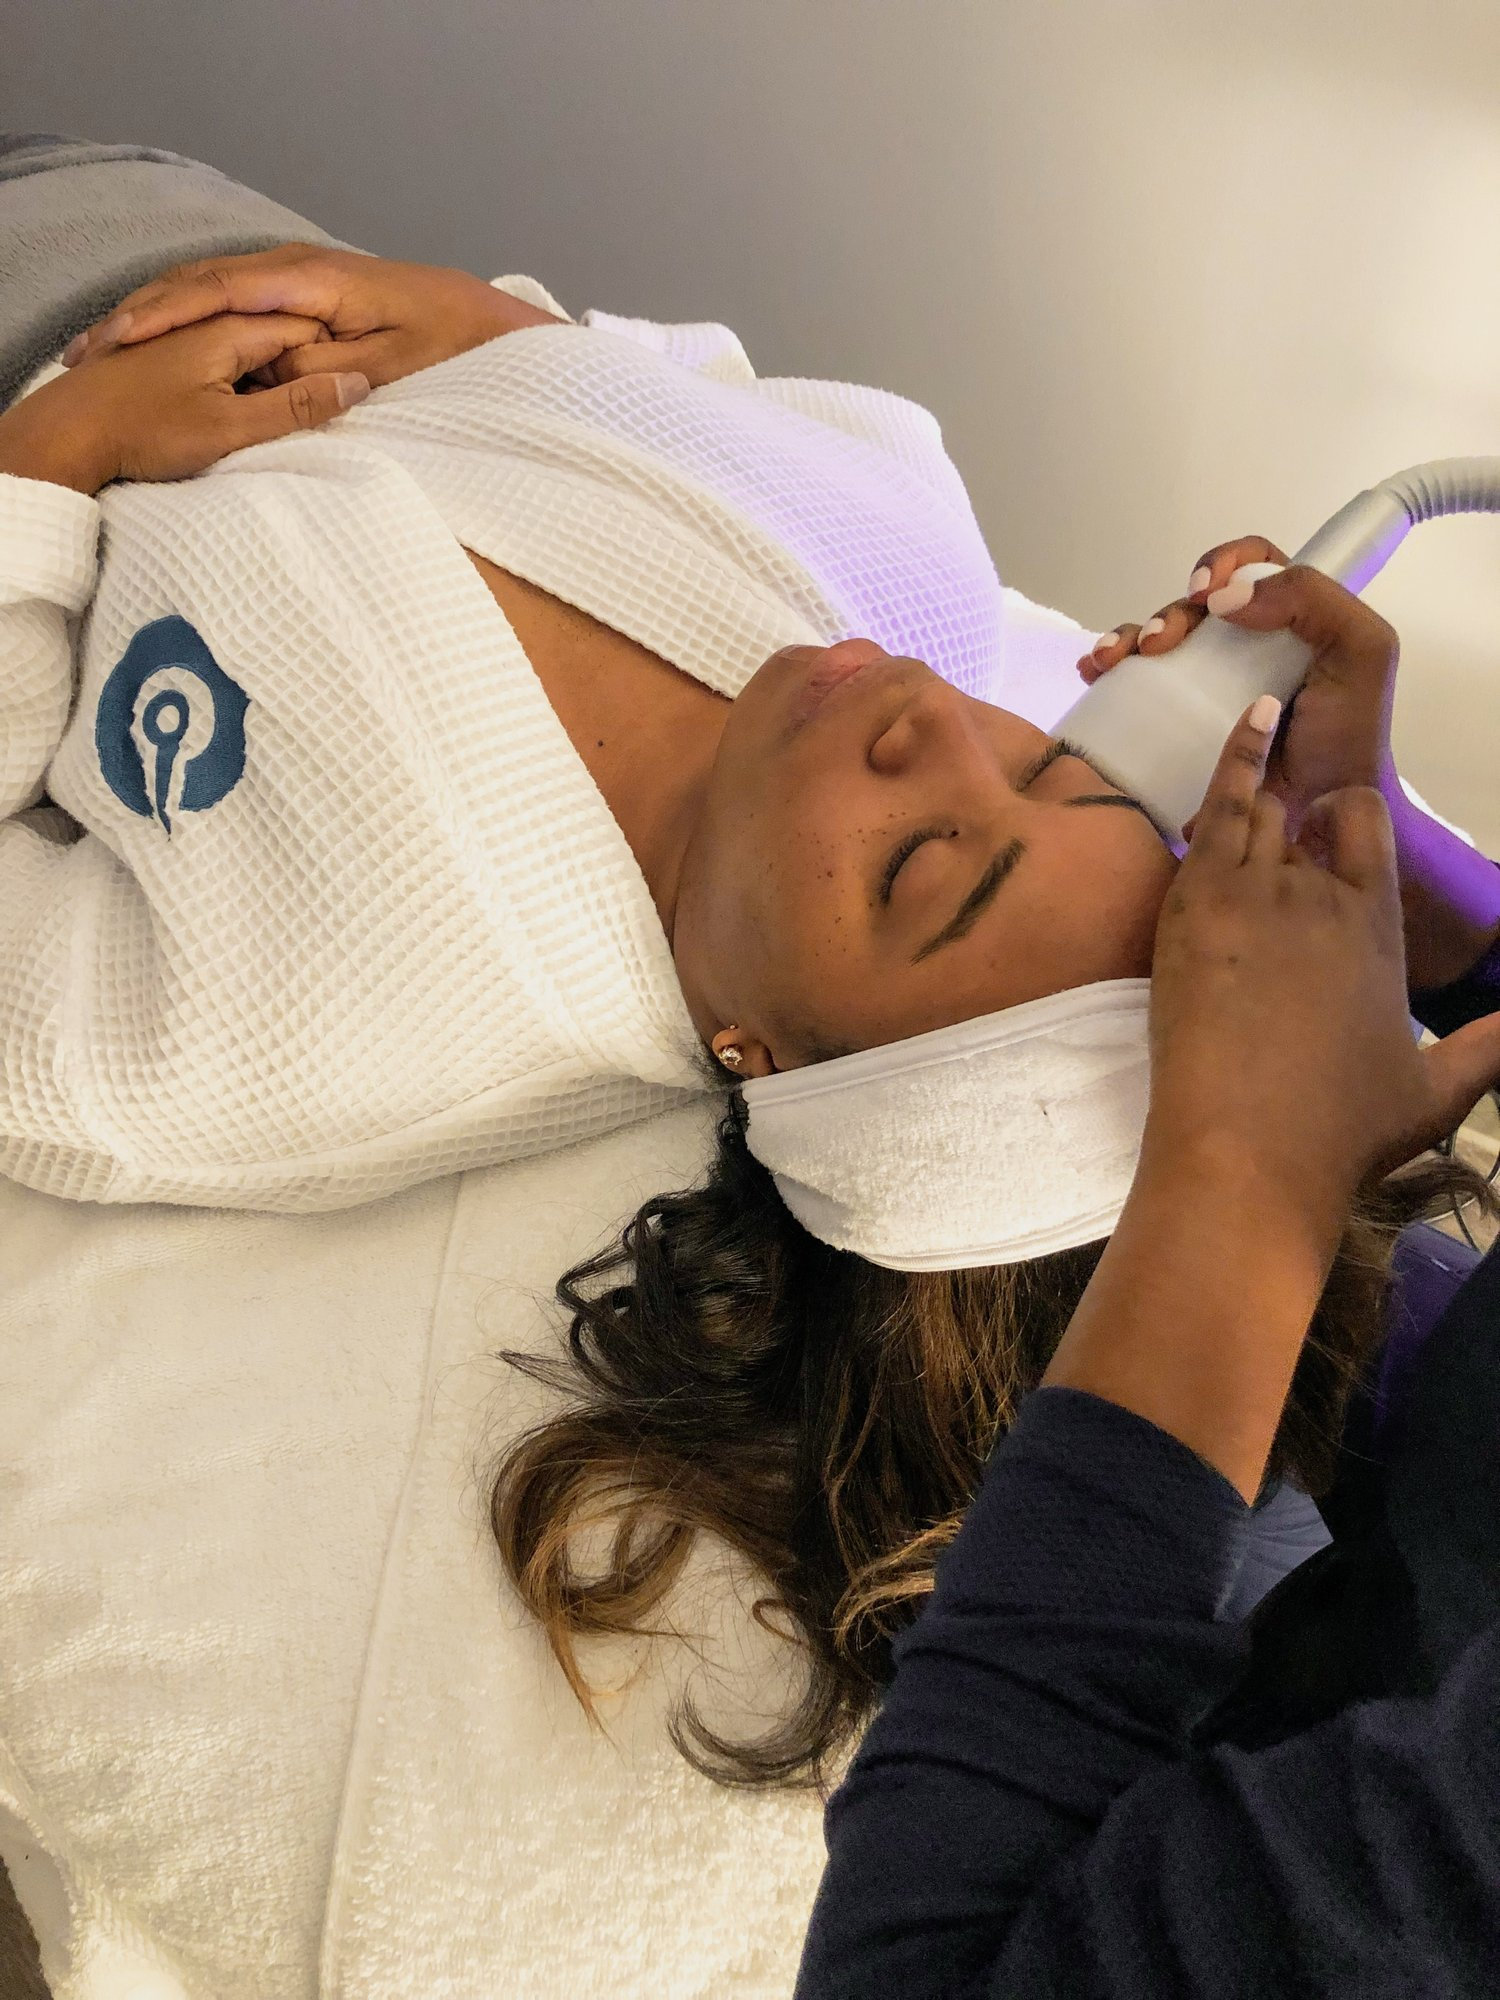 My first cryo facial experience — After Sunday Dinner